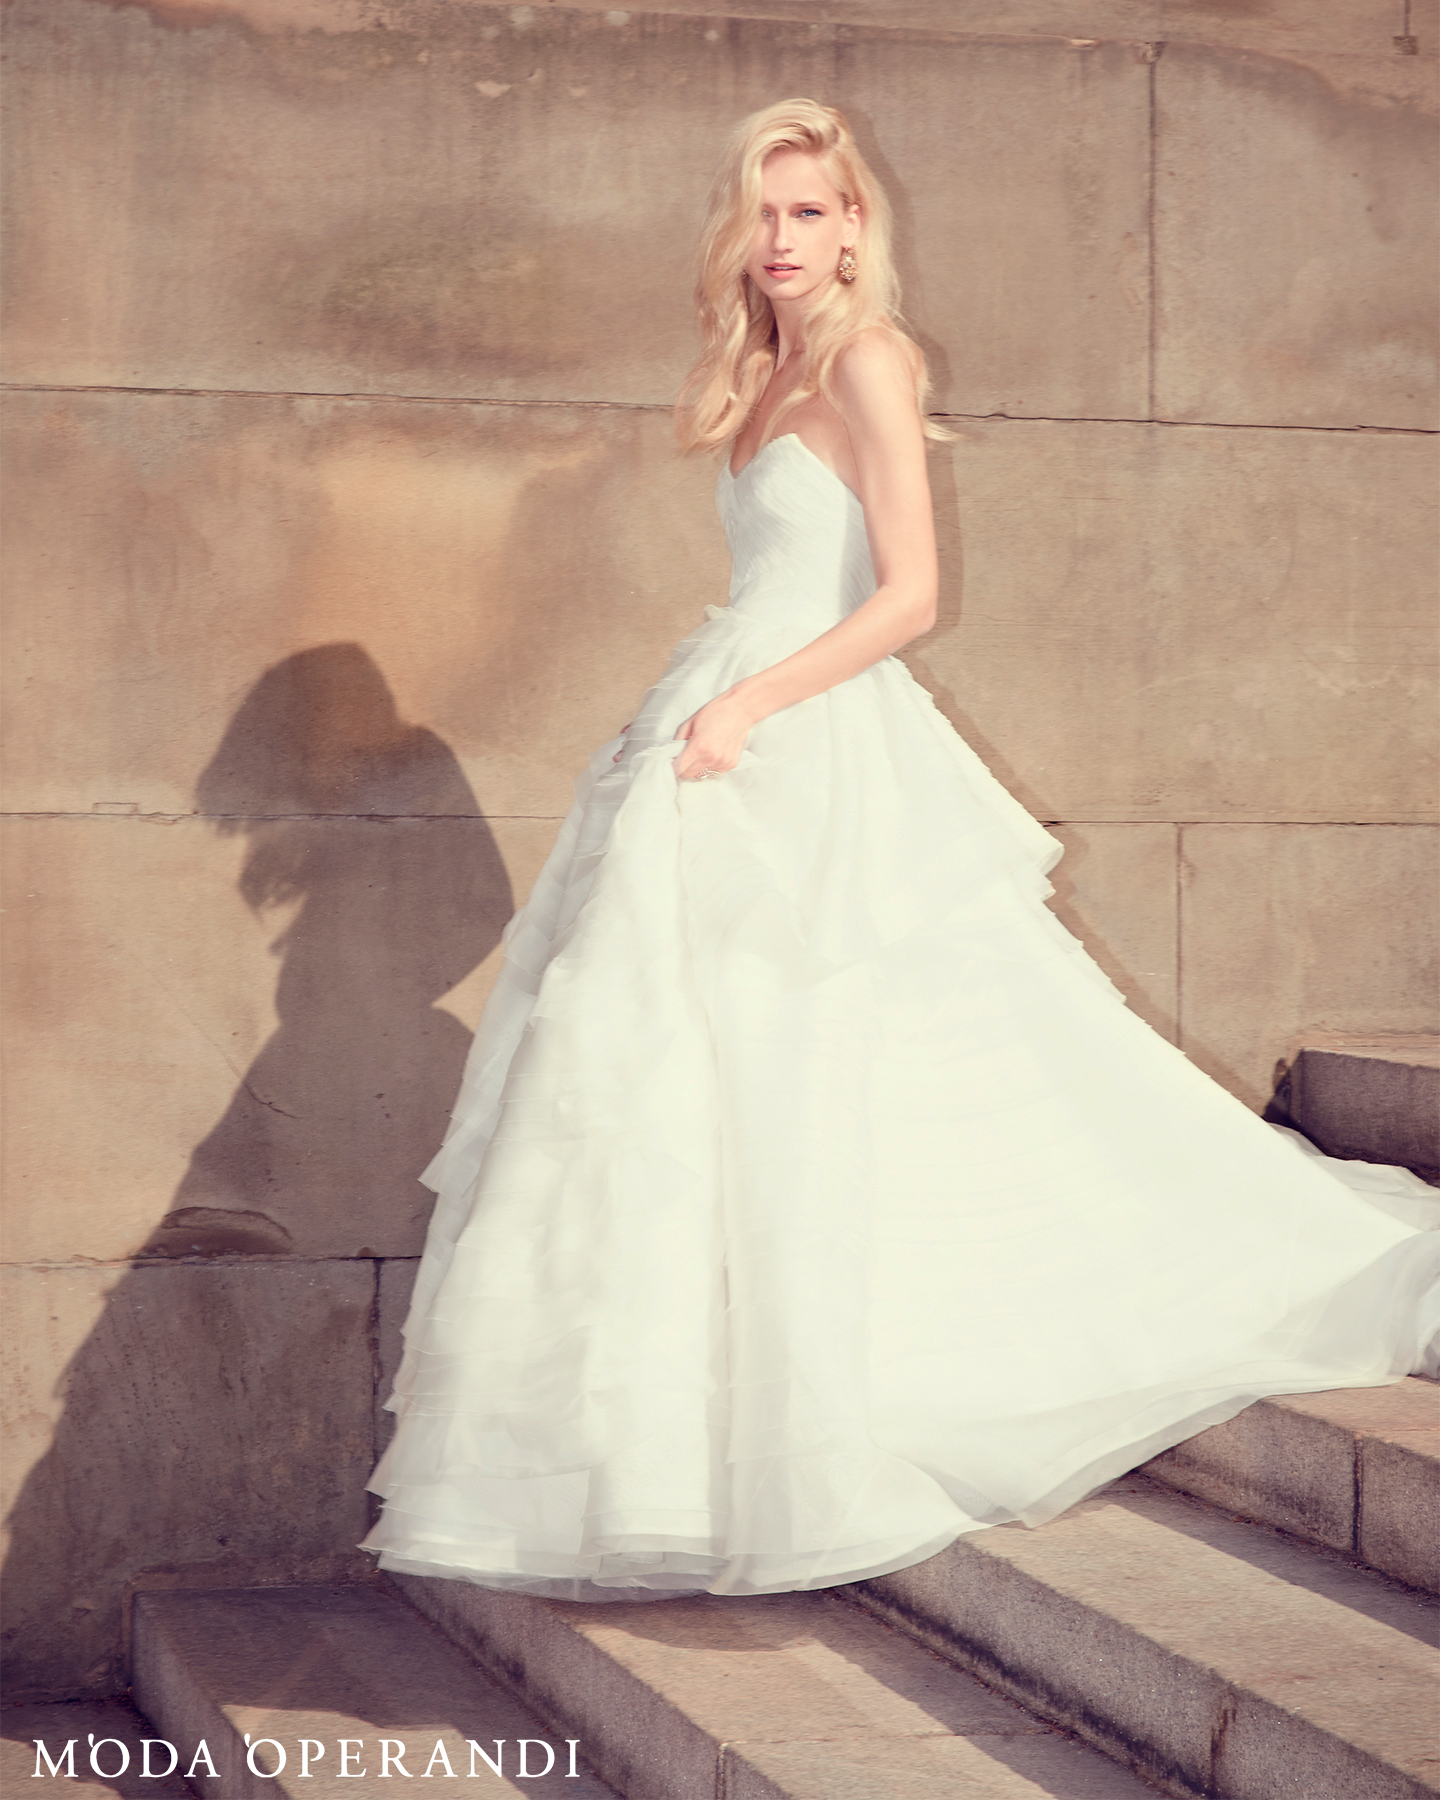 Lauren Santo Domingo Walks Back Down The Aisle With The Launch Of